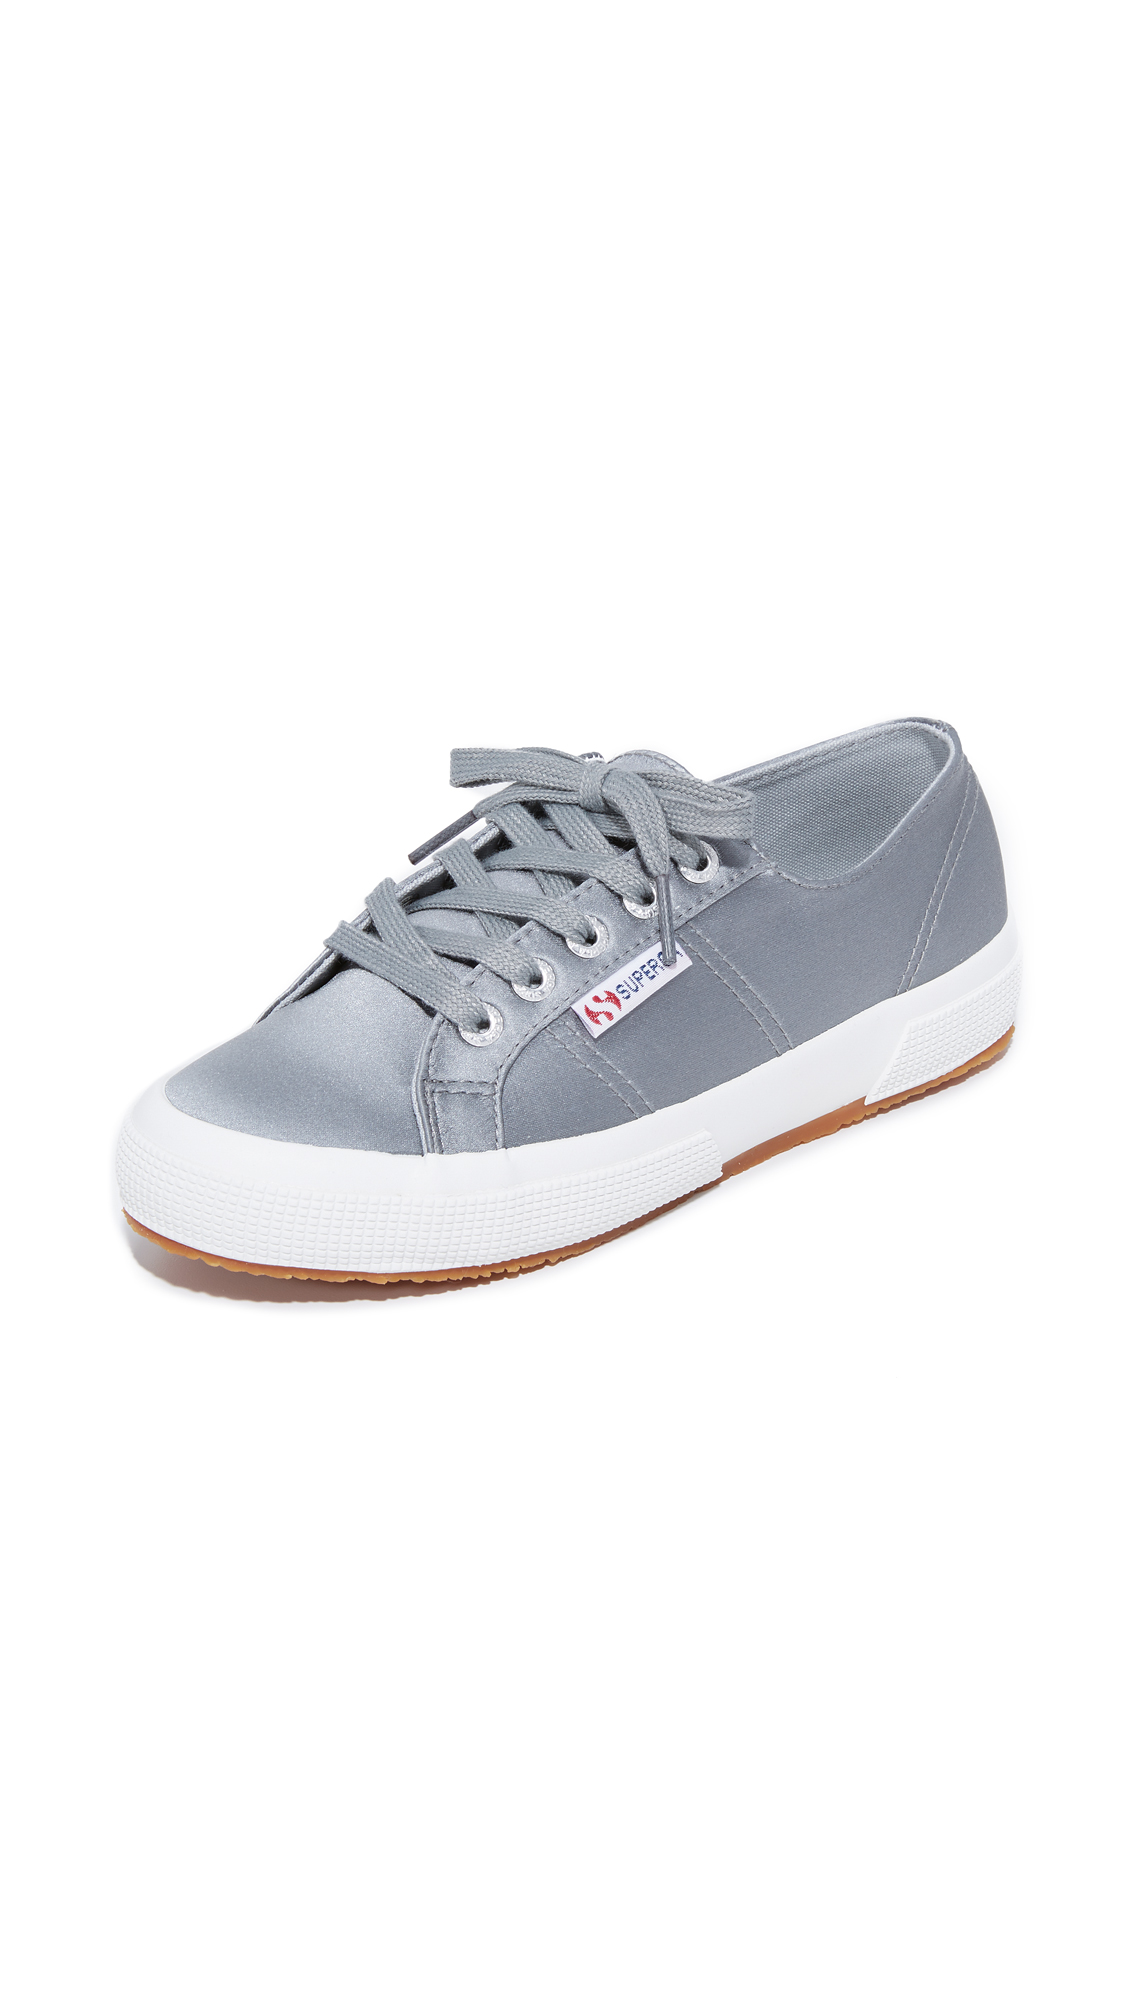 Superga 2750 Satin Classic Sneakers - Grey